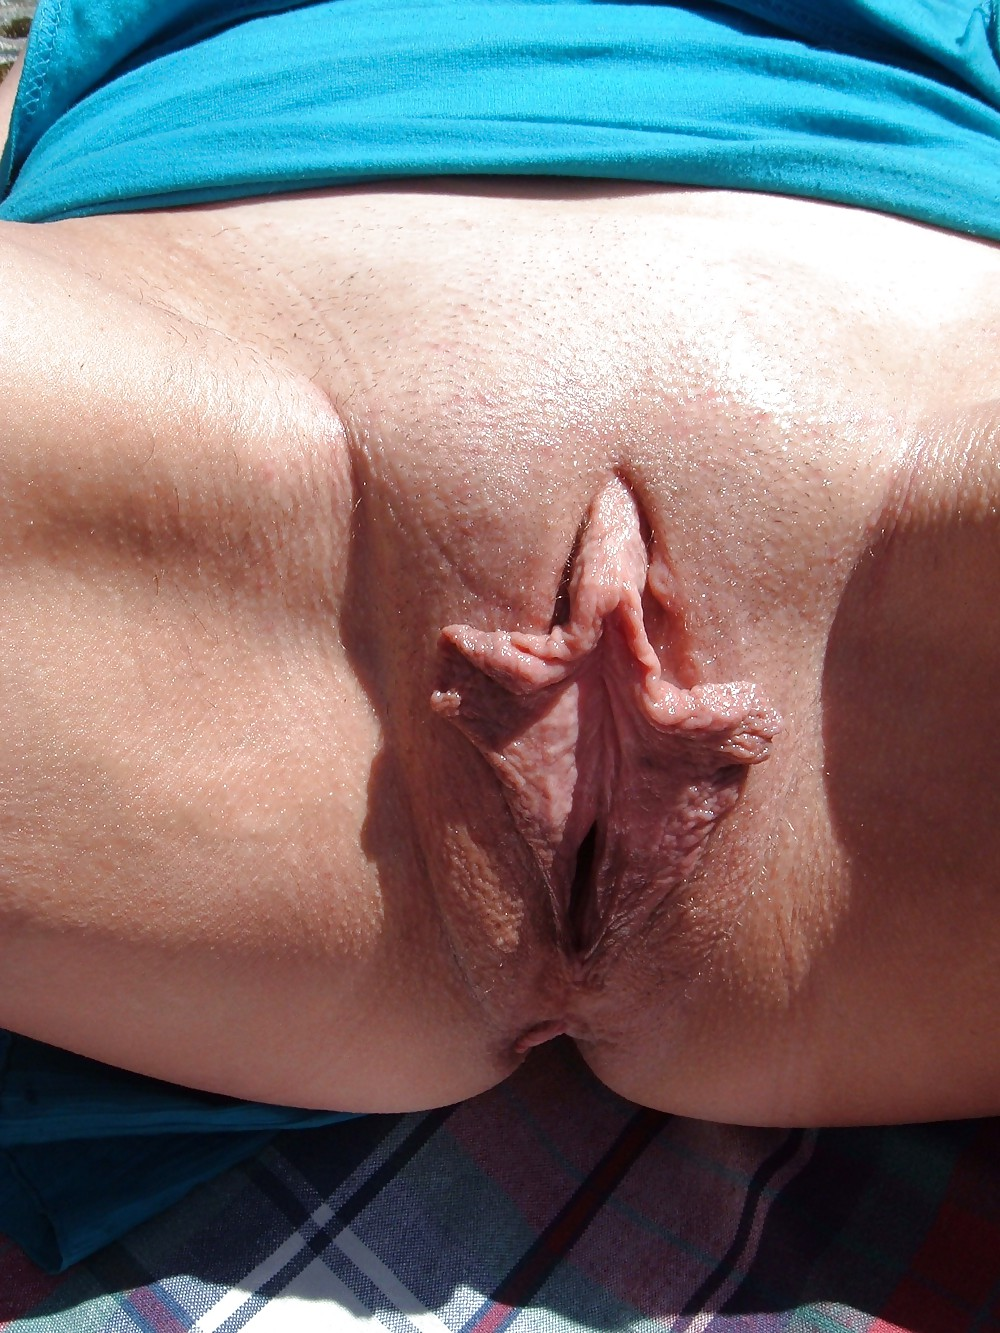 long-labia-nude